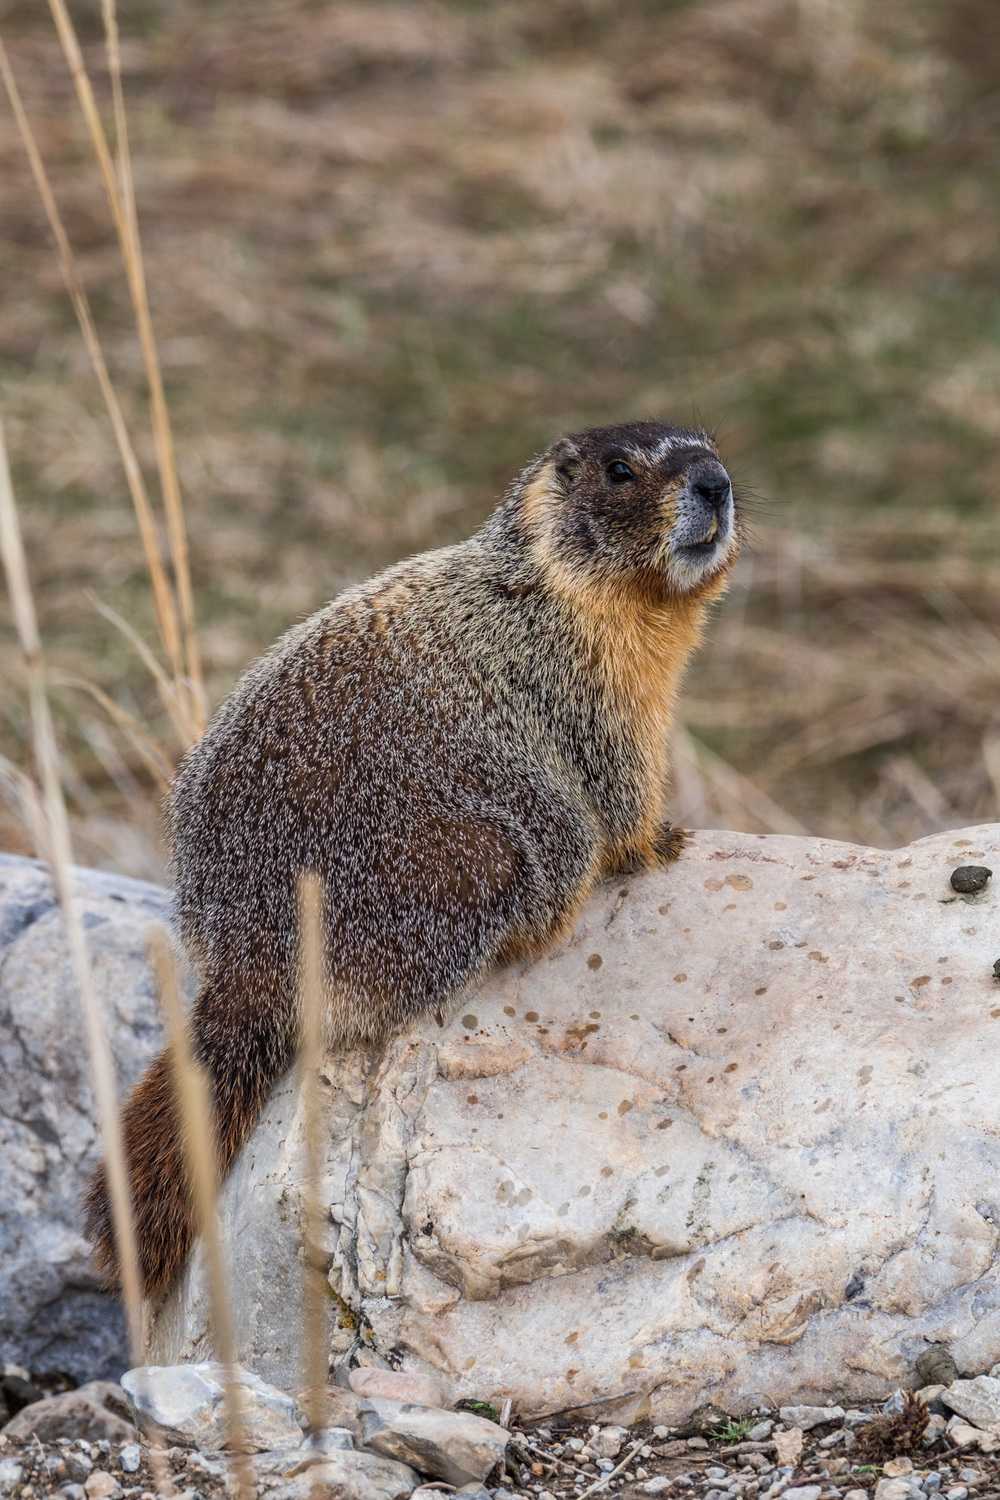 Low and behold, we saw some marmots!